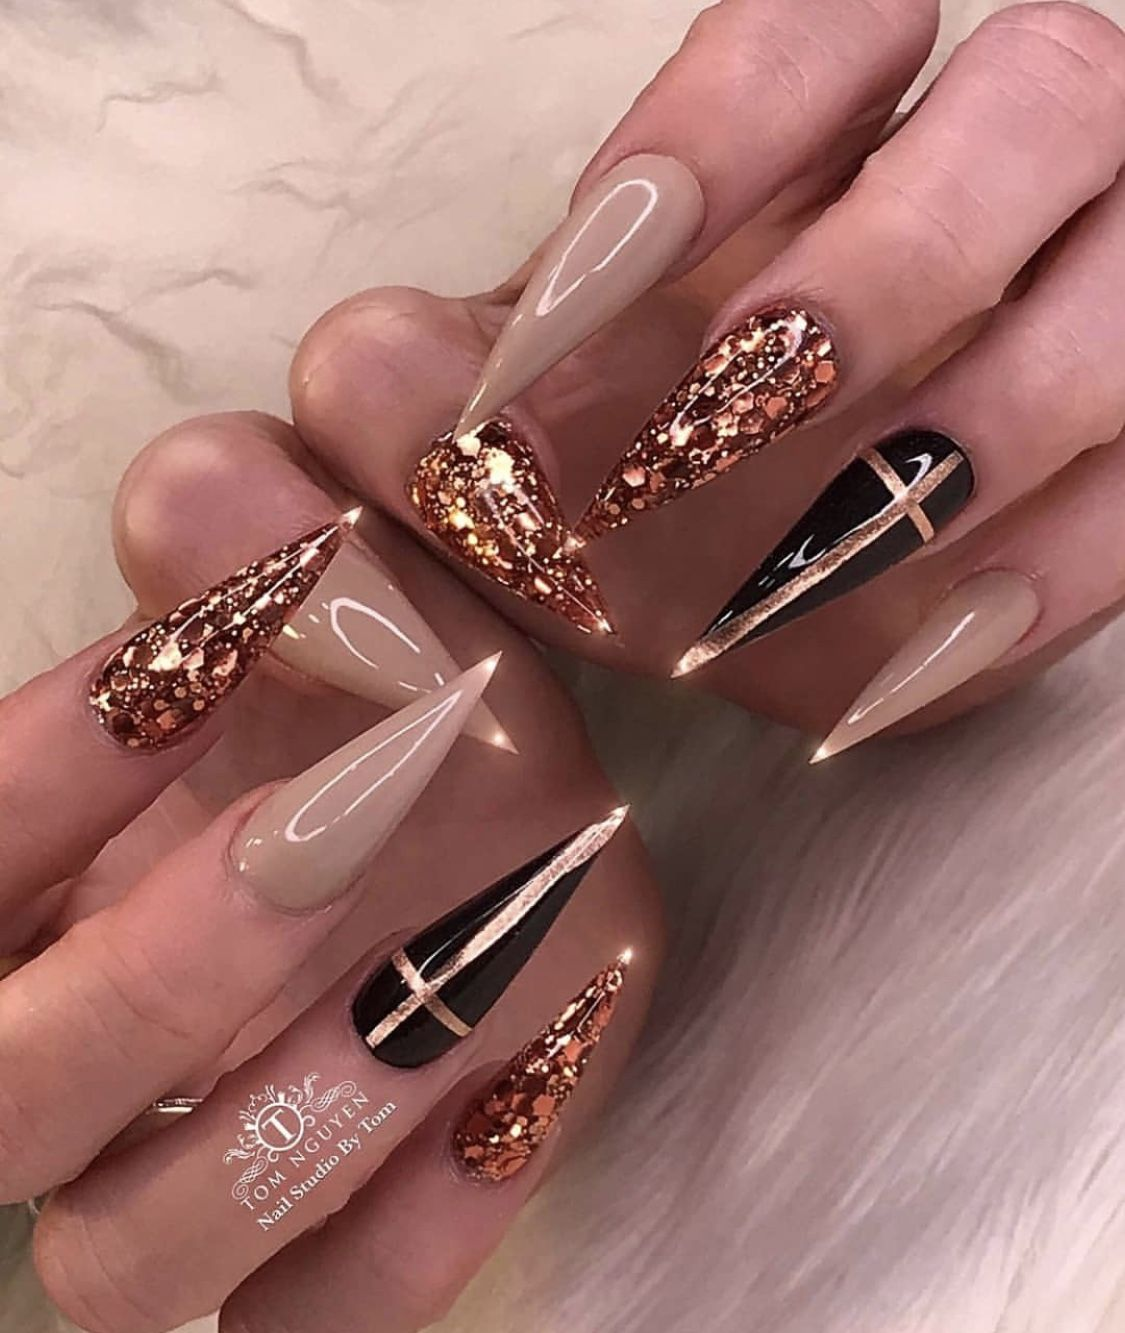 Pin By Kae Mitch On Brown Nails Stiletto Nails Designs Bling Nails Luxury Nails